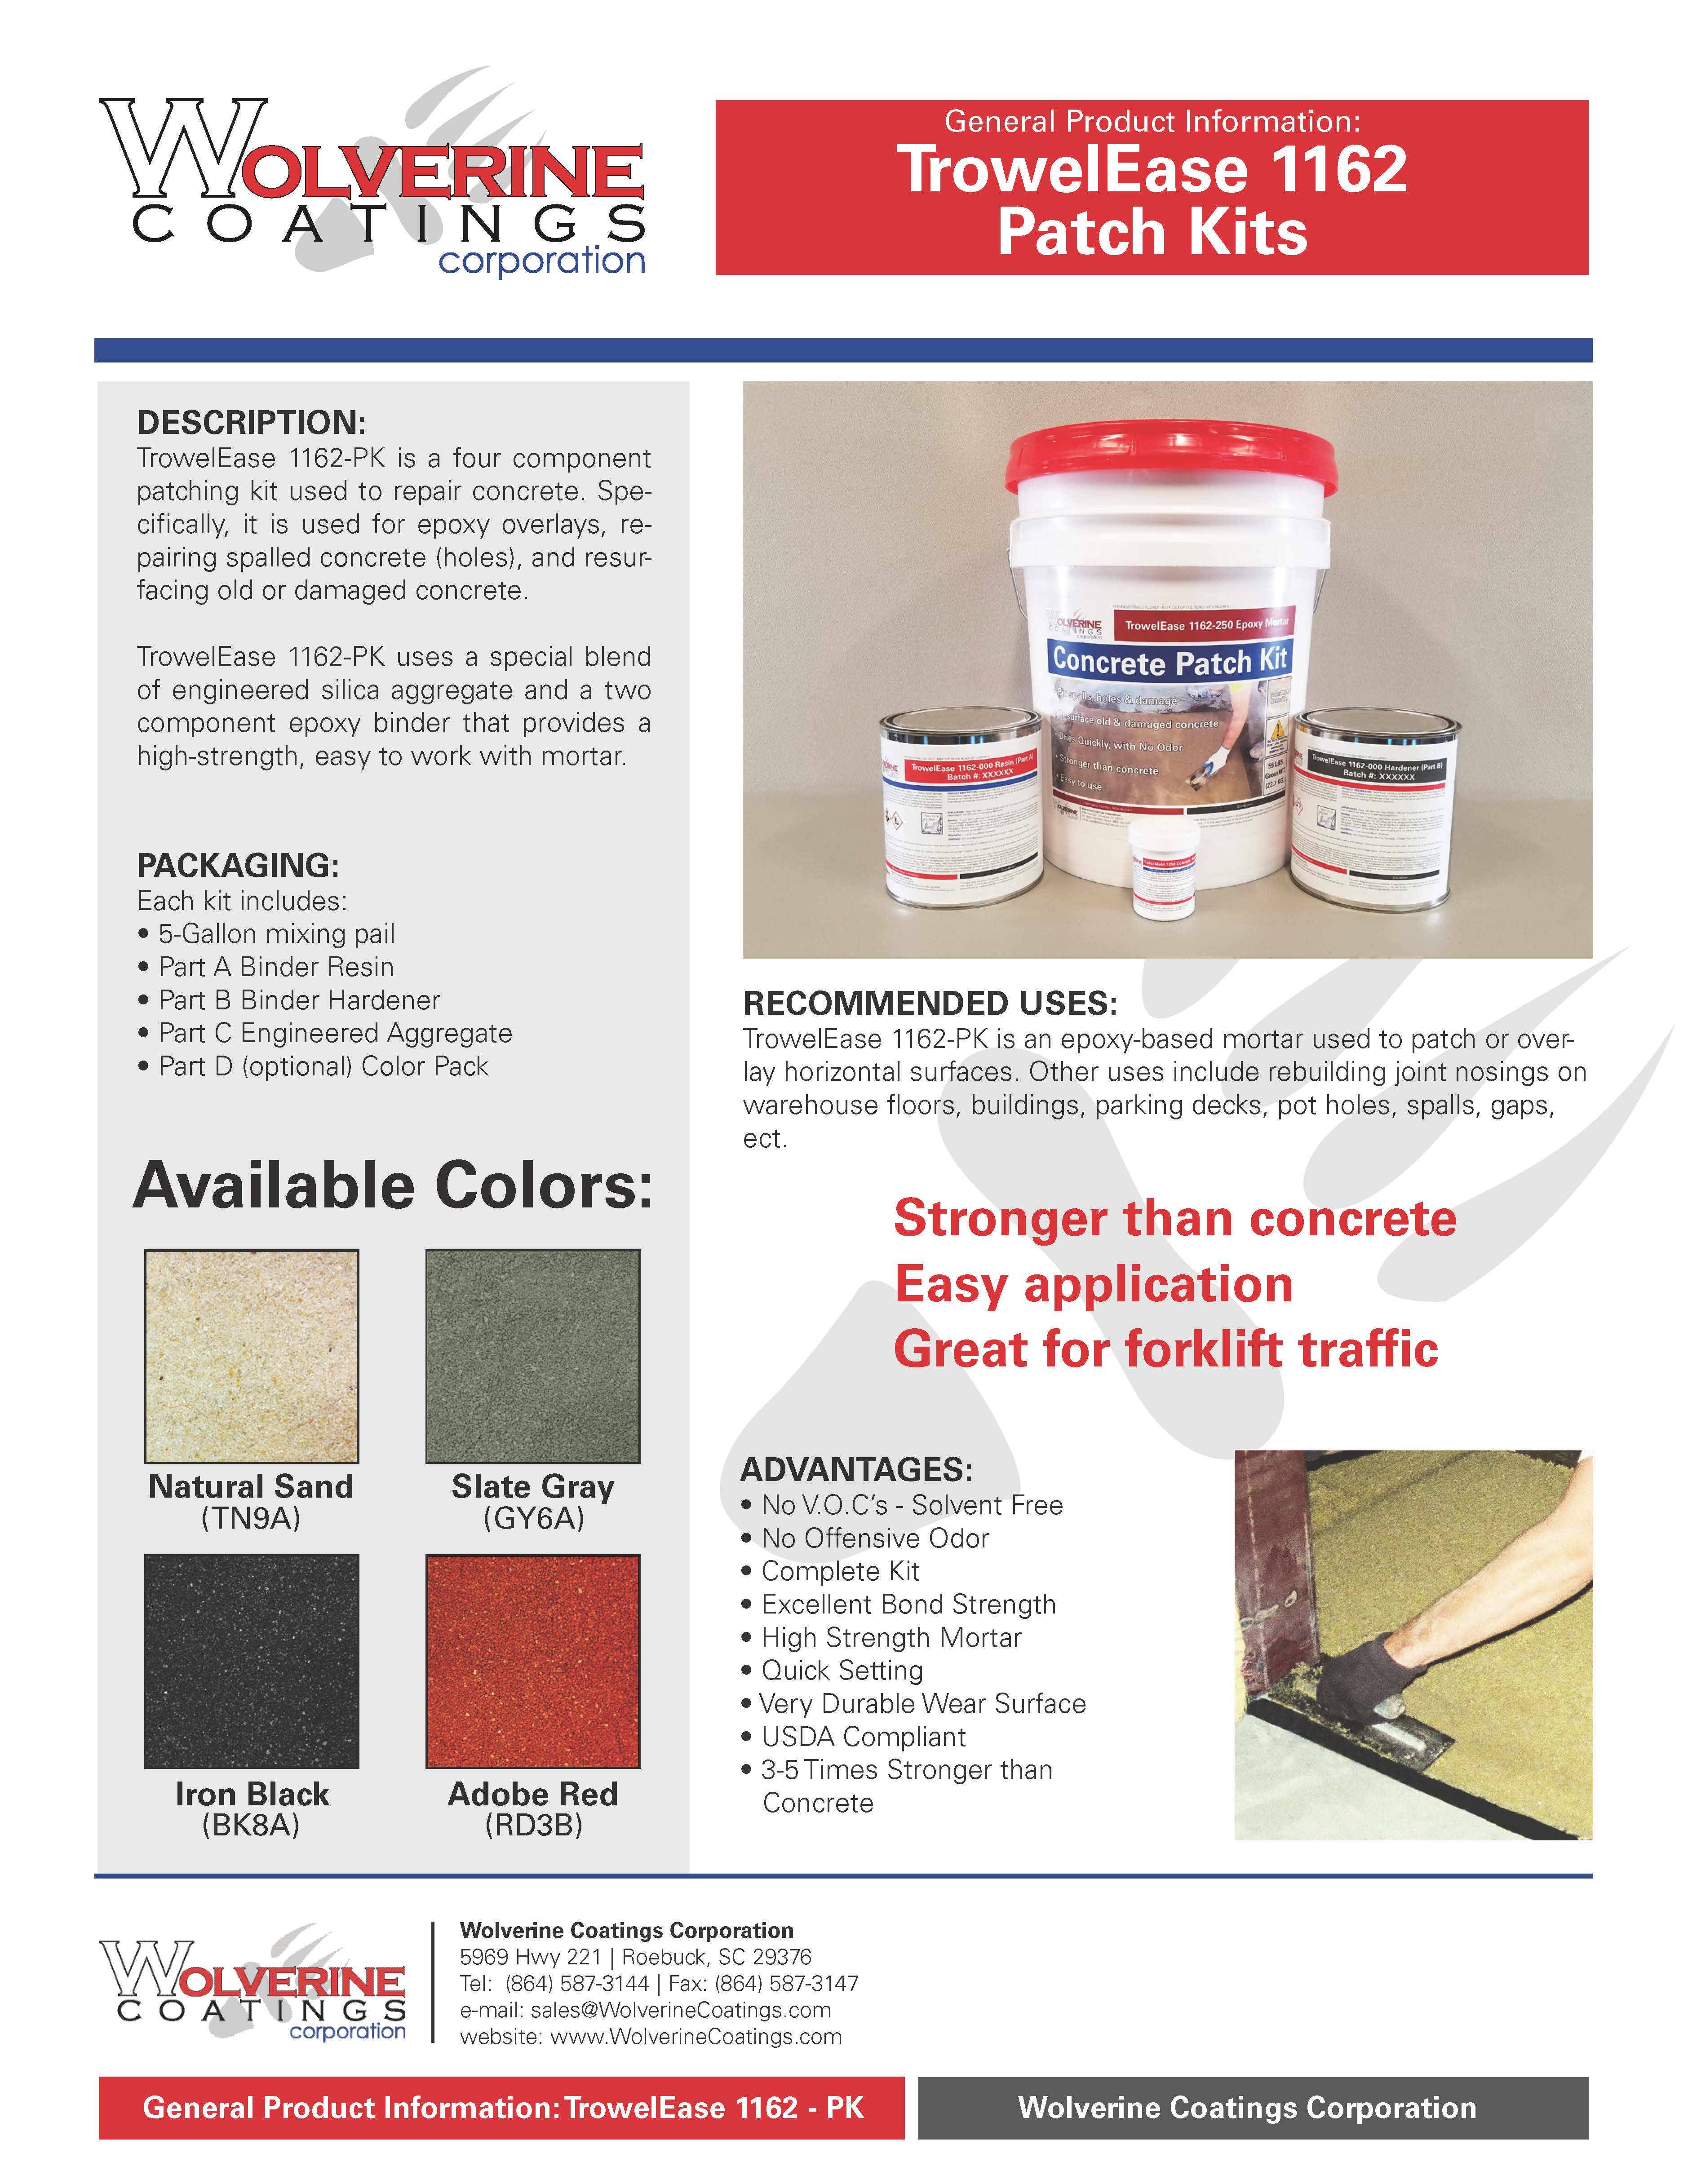 Patch Kits - General Product Information - Wolverine Coatings Corporation: Coatings Manufacturer, Spartanburg, SC